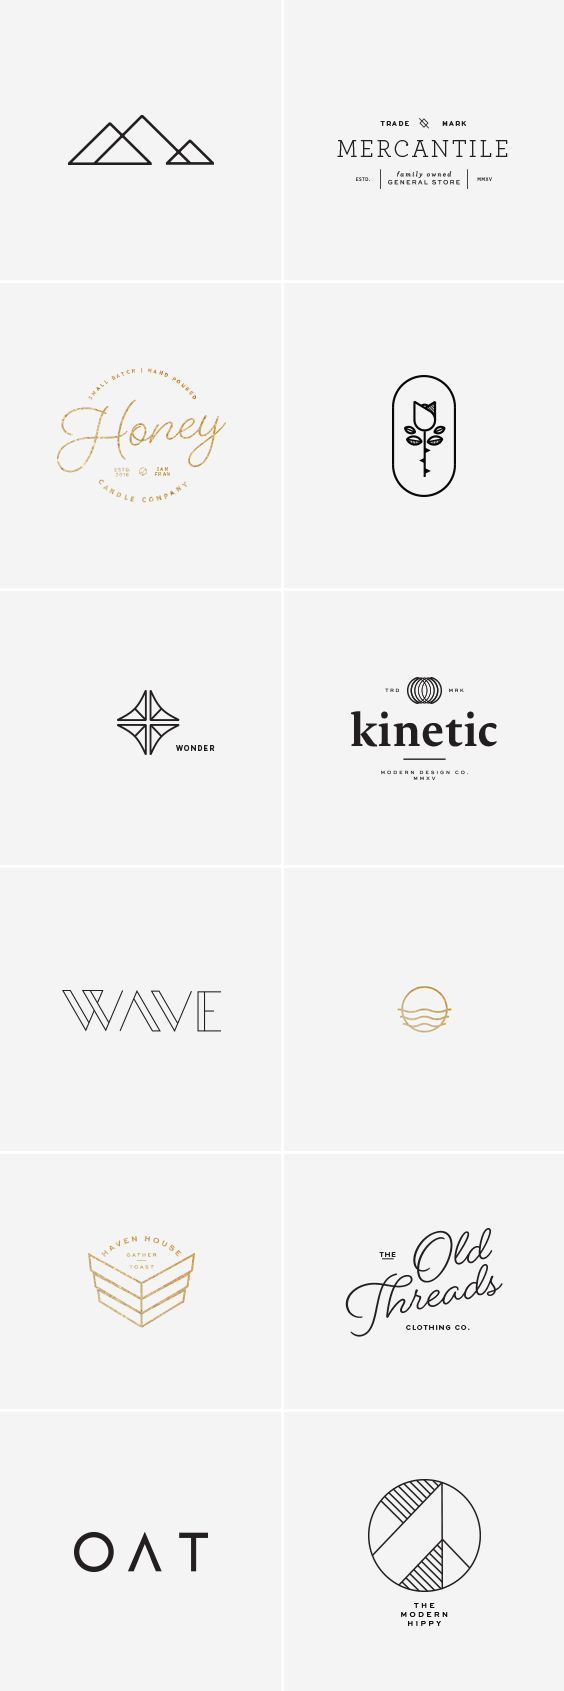 Daily Logo Project by Audrey Elise